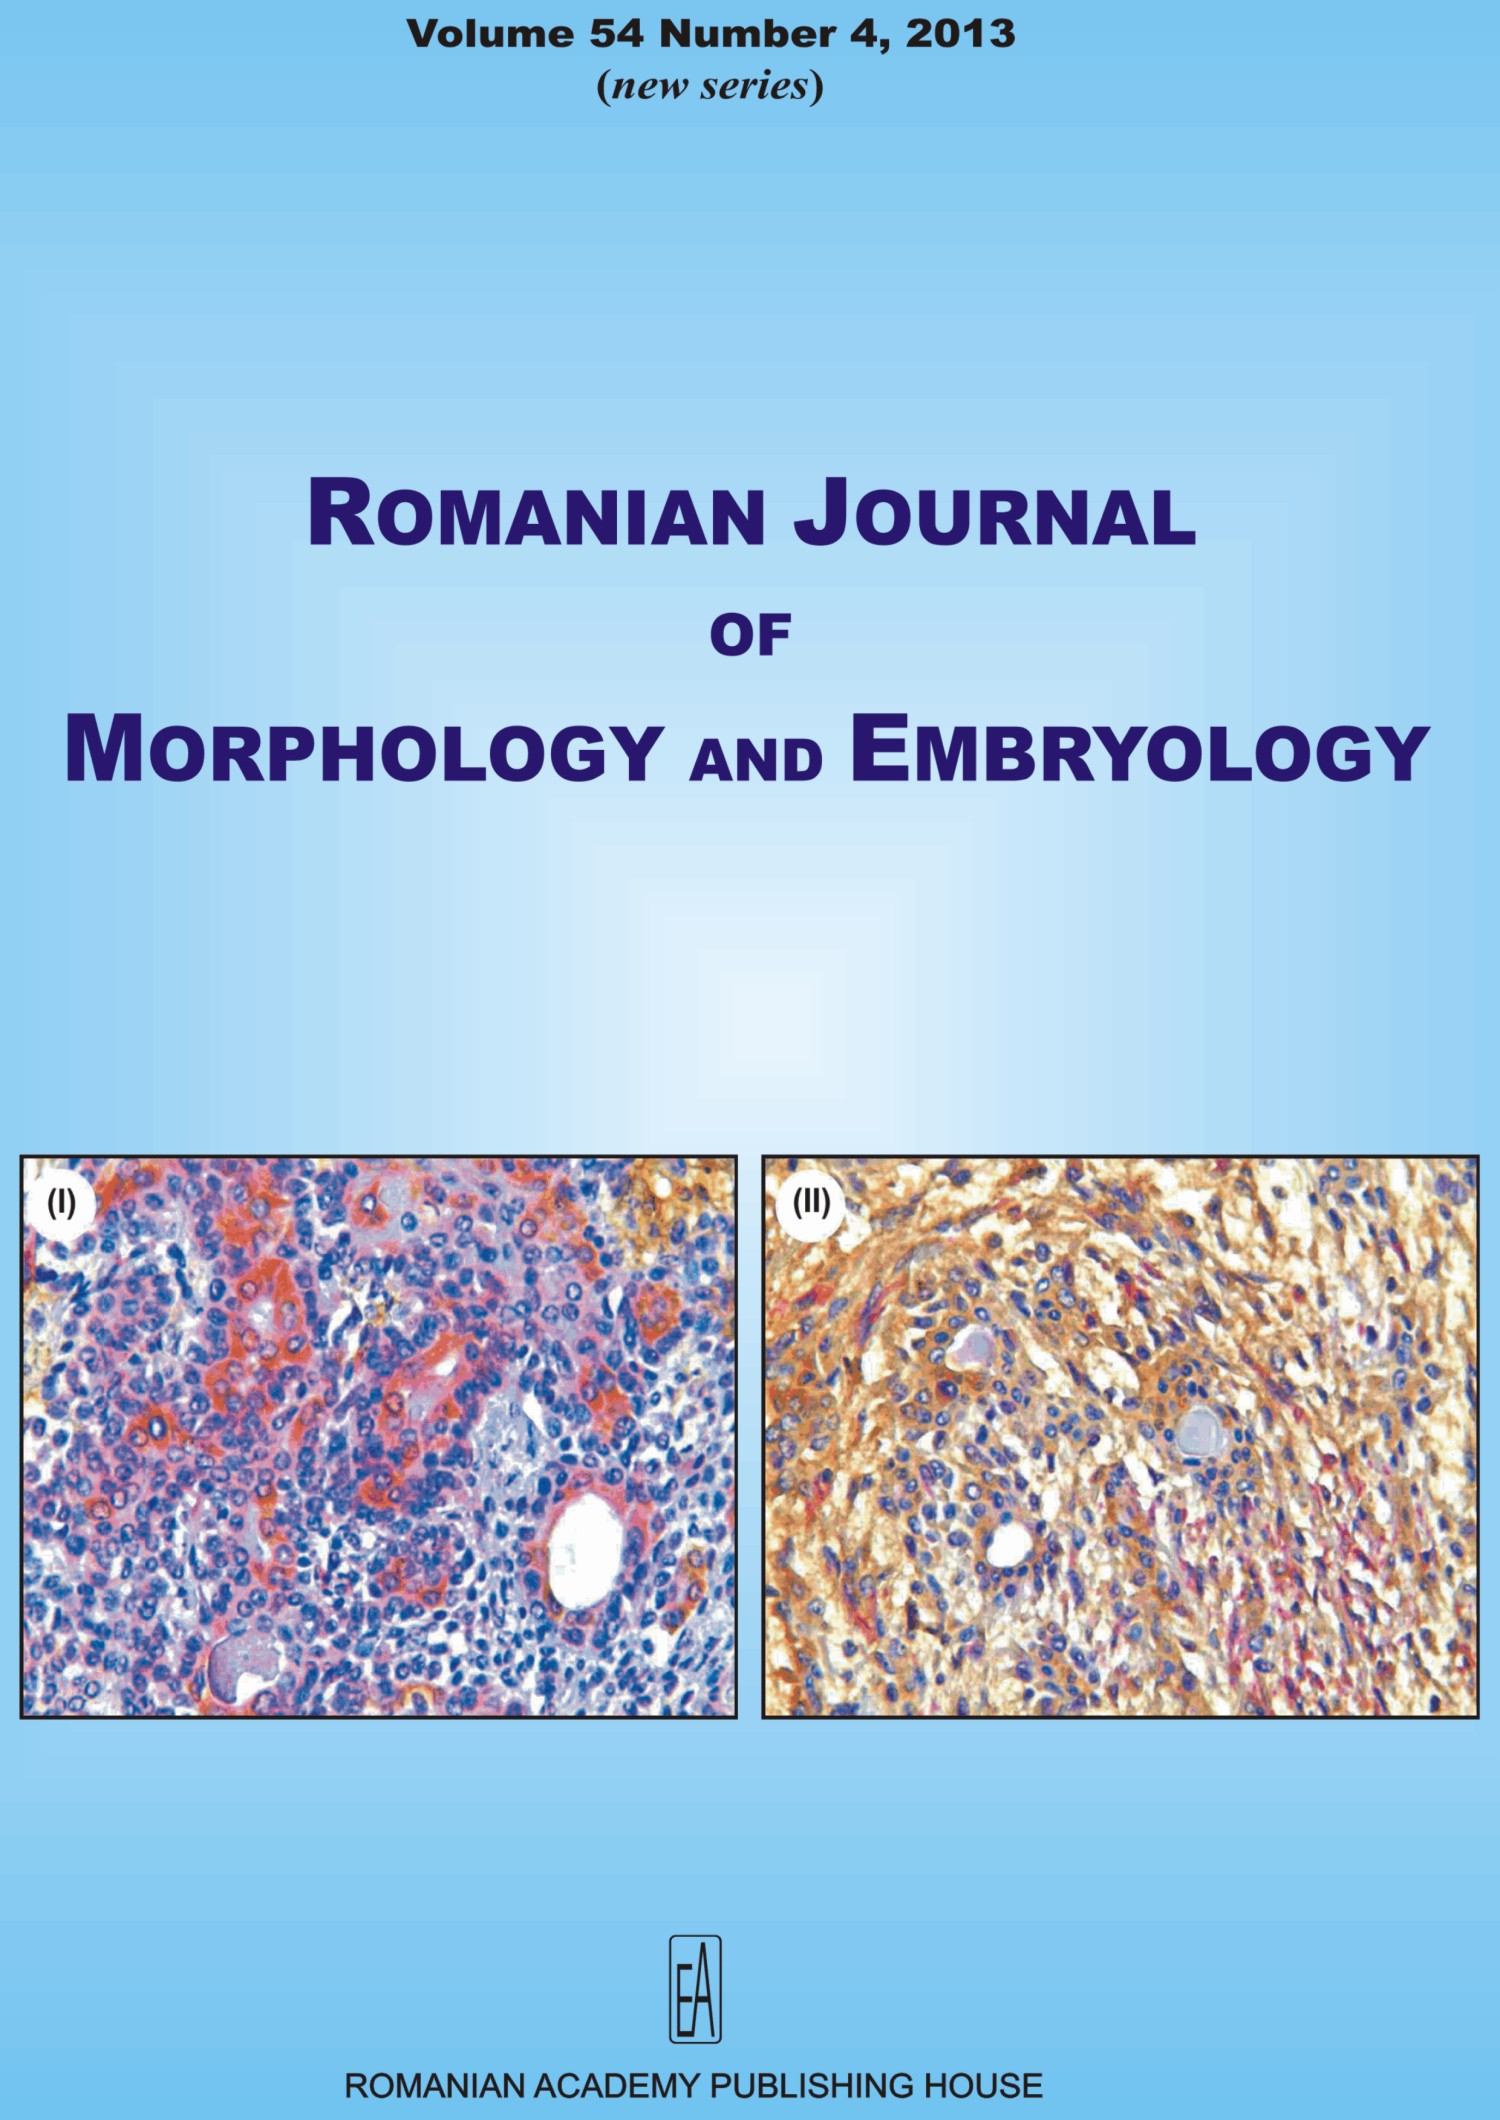 Romanian Journal of Morphology and Embryology, vol. 54 no. 4, 2013